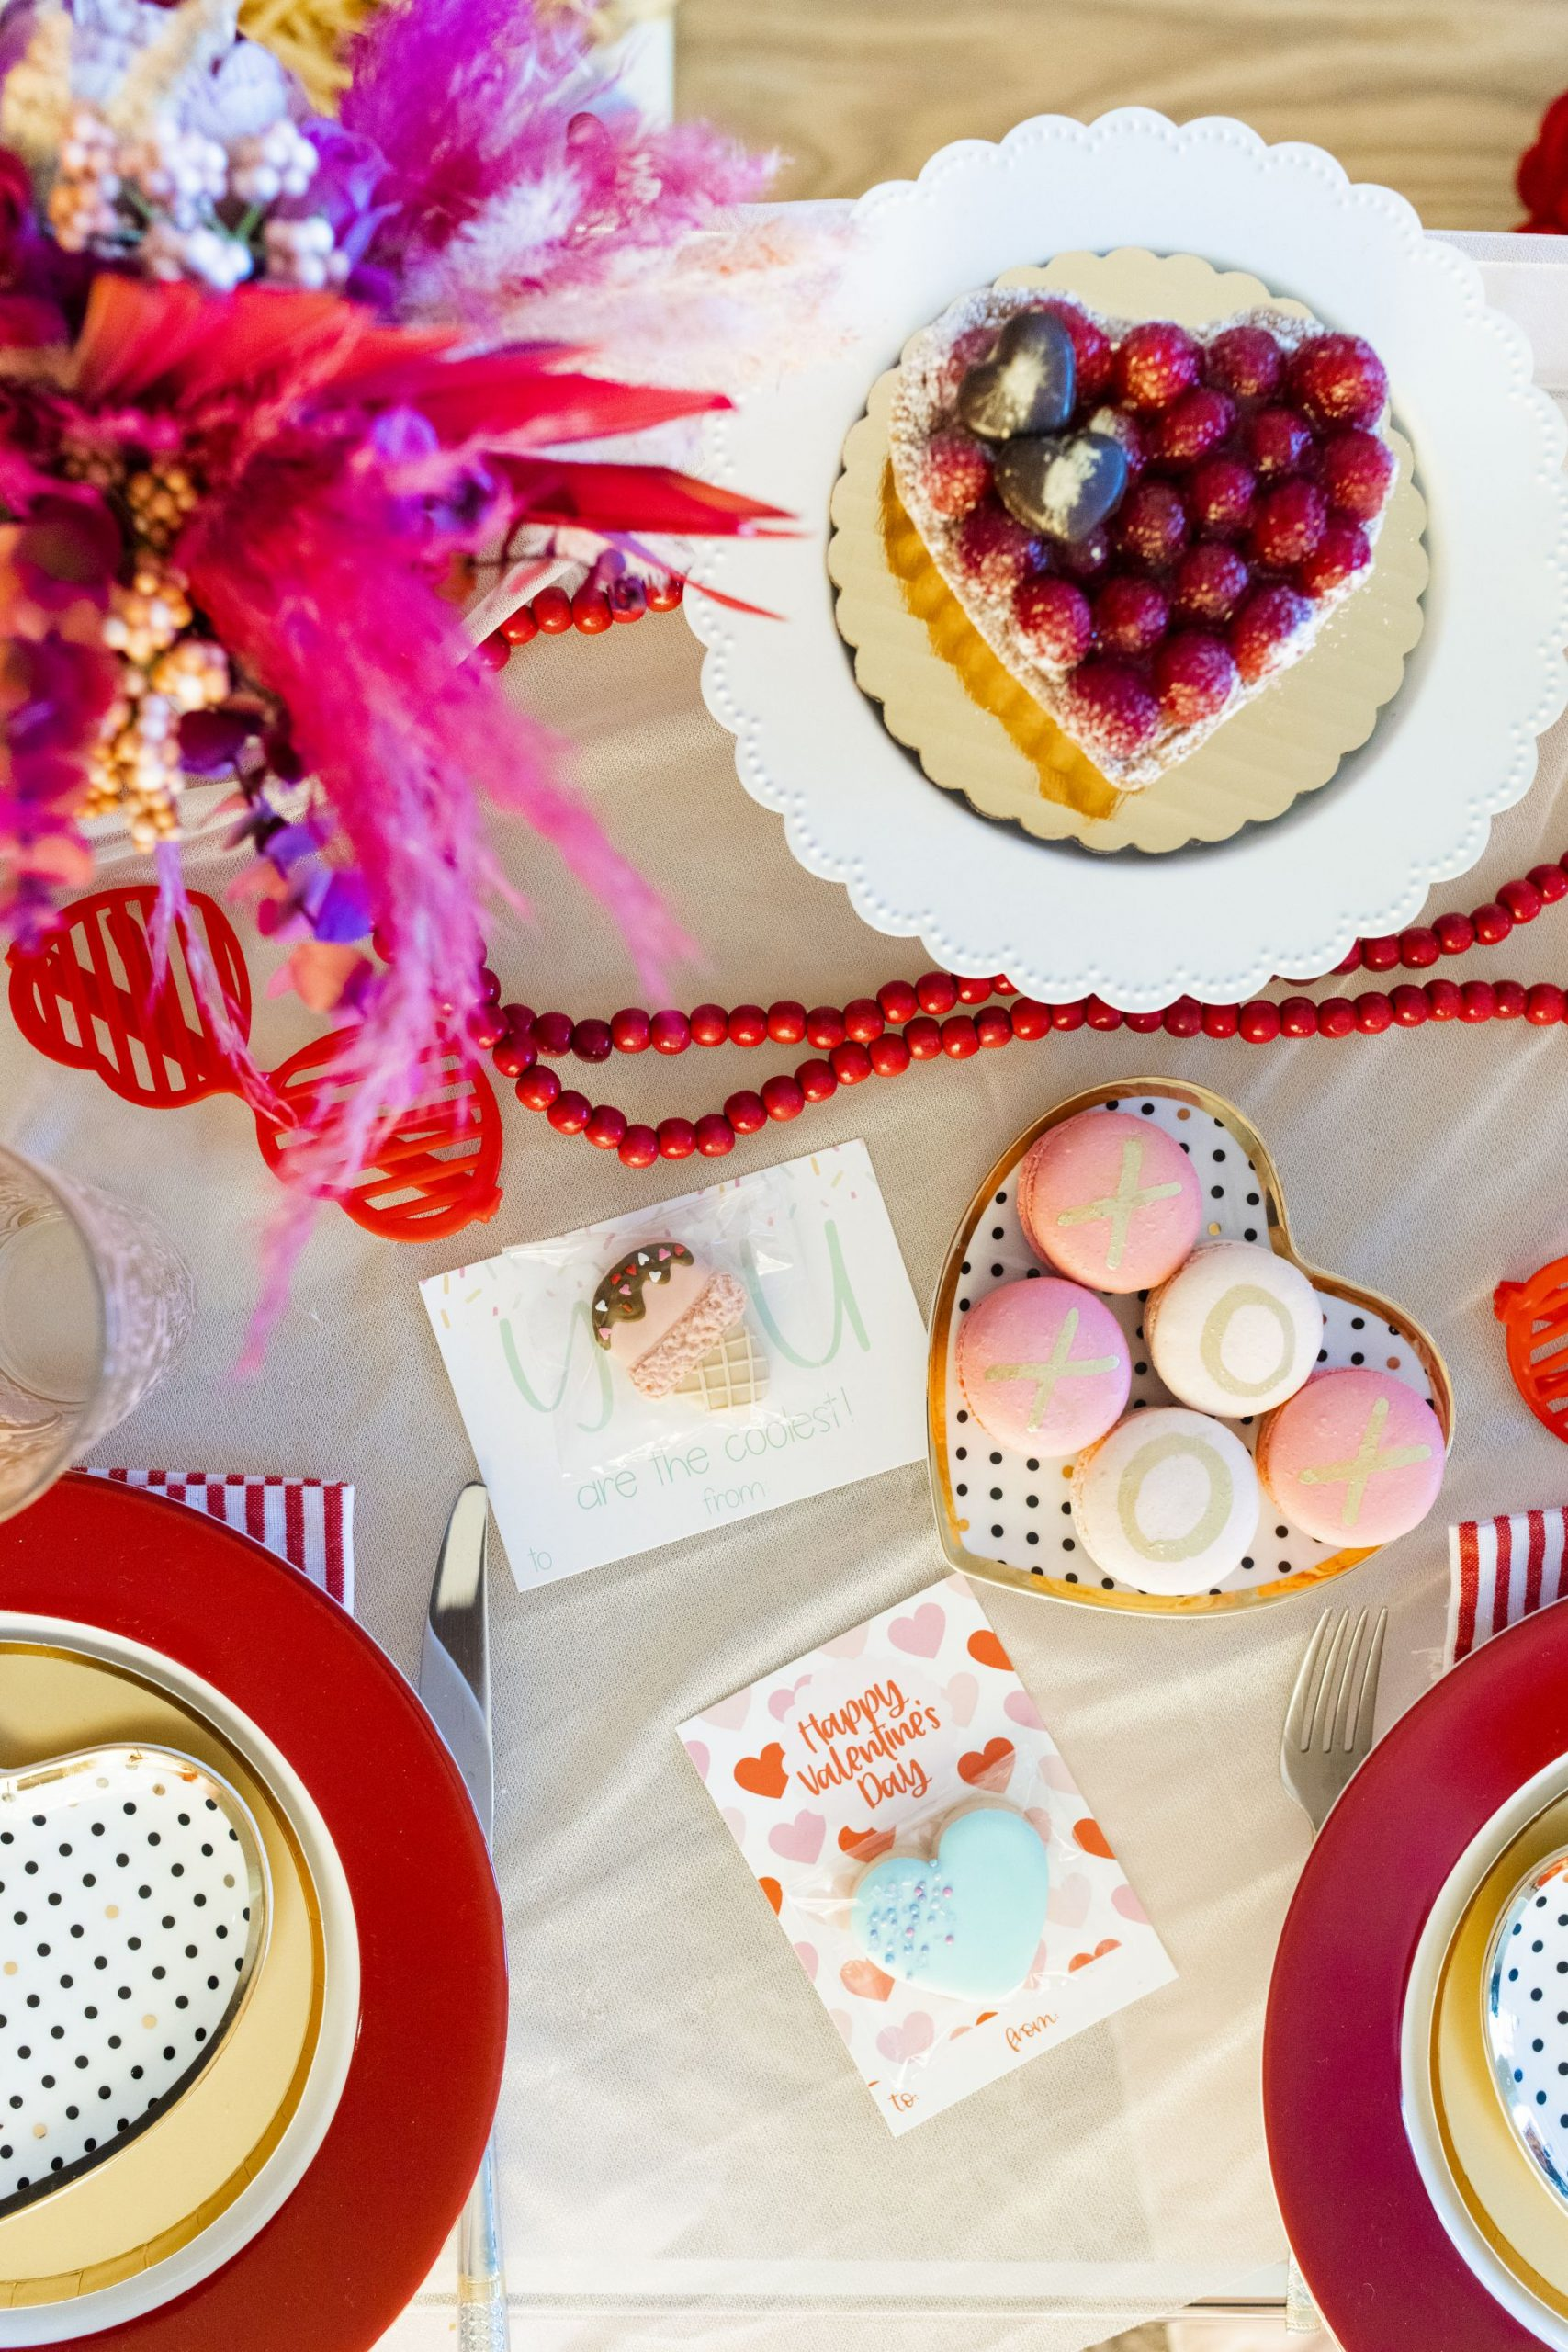 glam Valentine's and Galentine's party, heart place setting, conversation hearts table setting, red and pink table setting, valentine's day table setting, galentine's table setting, red and pink party, intimate table setting ideas, girls night table setting, hearts table settings, sweets table decor ideas, pink and red party theme, girly party theme decor, love party theme decor, valentines day party ideas, valentines day party ideas for adults, Red Soles and Red Wine